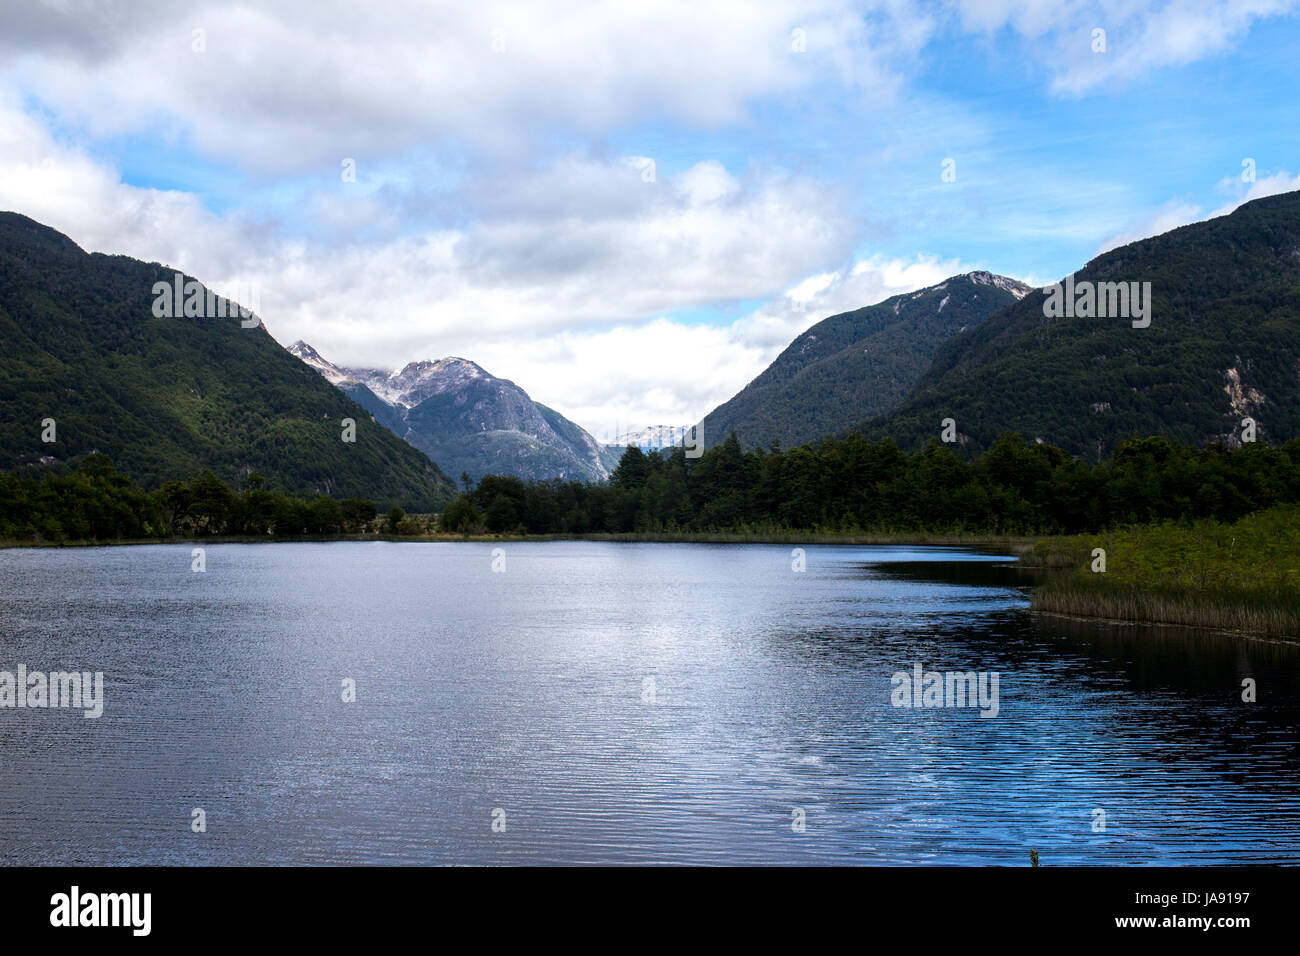 One of the beautifull lake on Carretera Austral - Stock Image